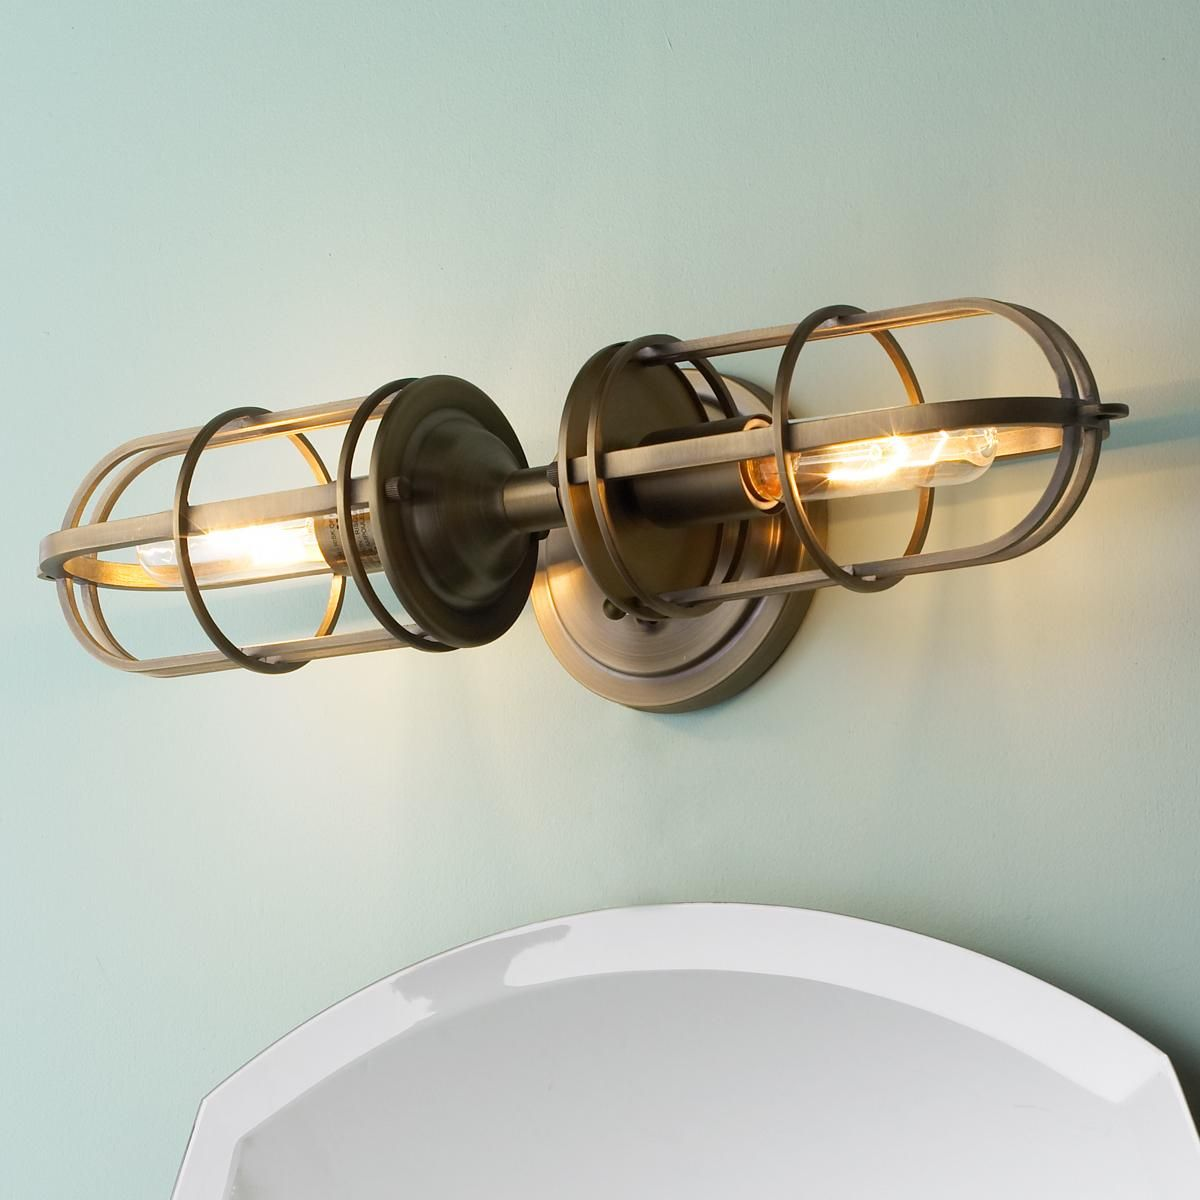 Superbe Nautical Cage 2 Light Bath Light. Nice But Pricey. But Does Use High Watt